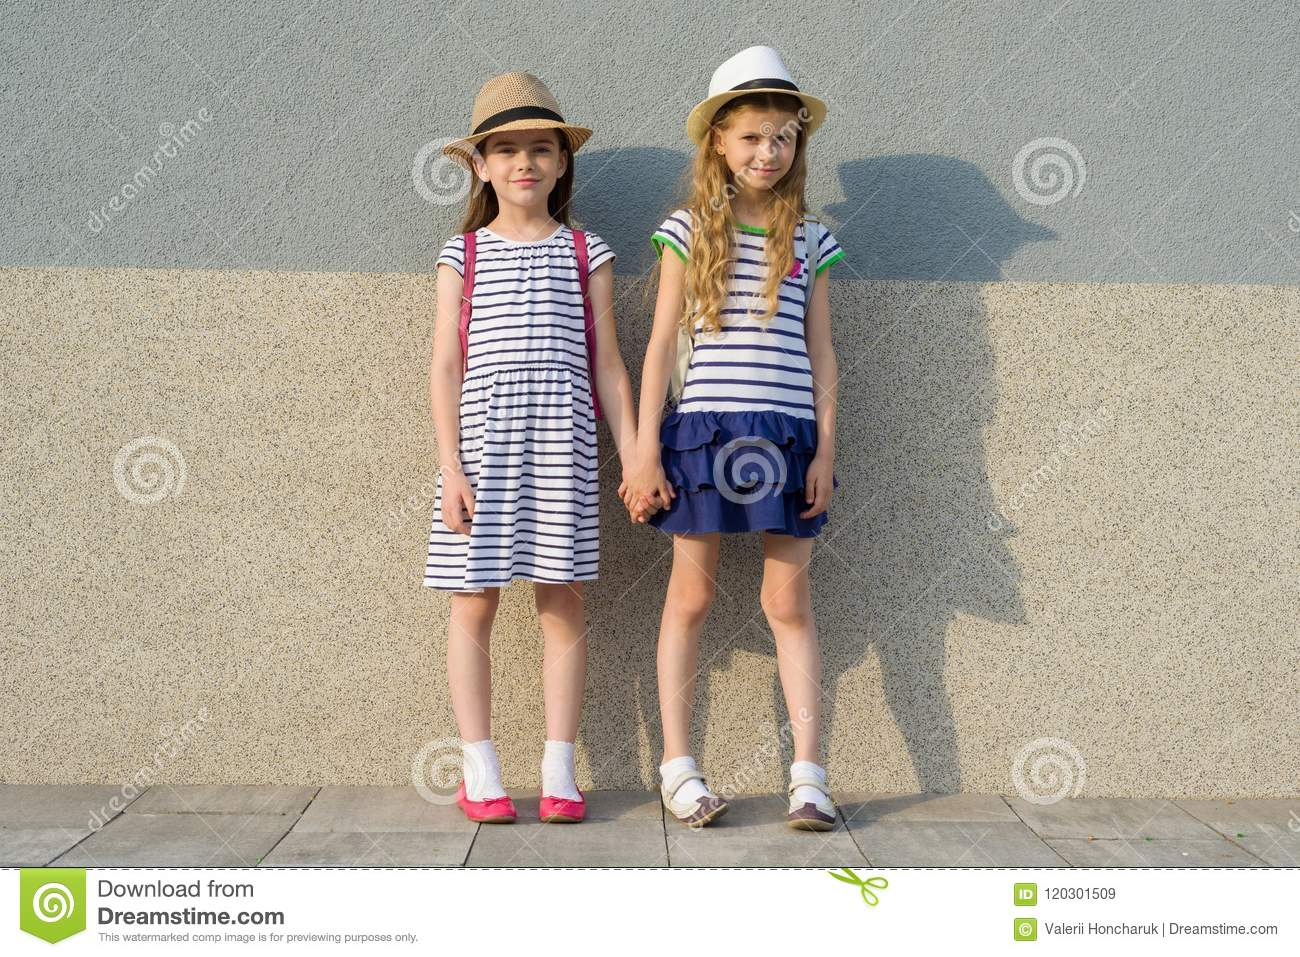 Outdoor summer portrait of two happy girl friends 7, 8 years holding hands. Girls in striped dresses, hats with backpack,